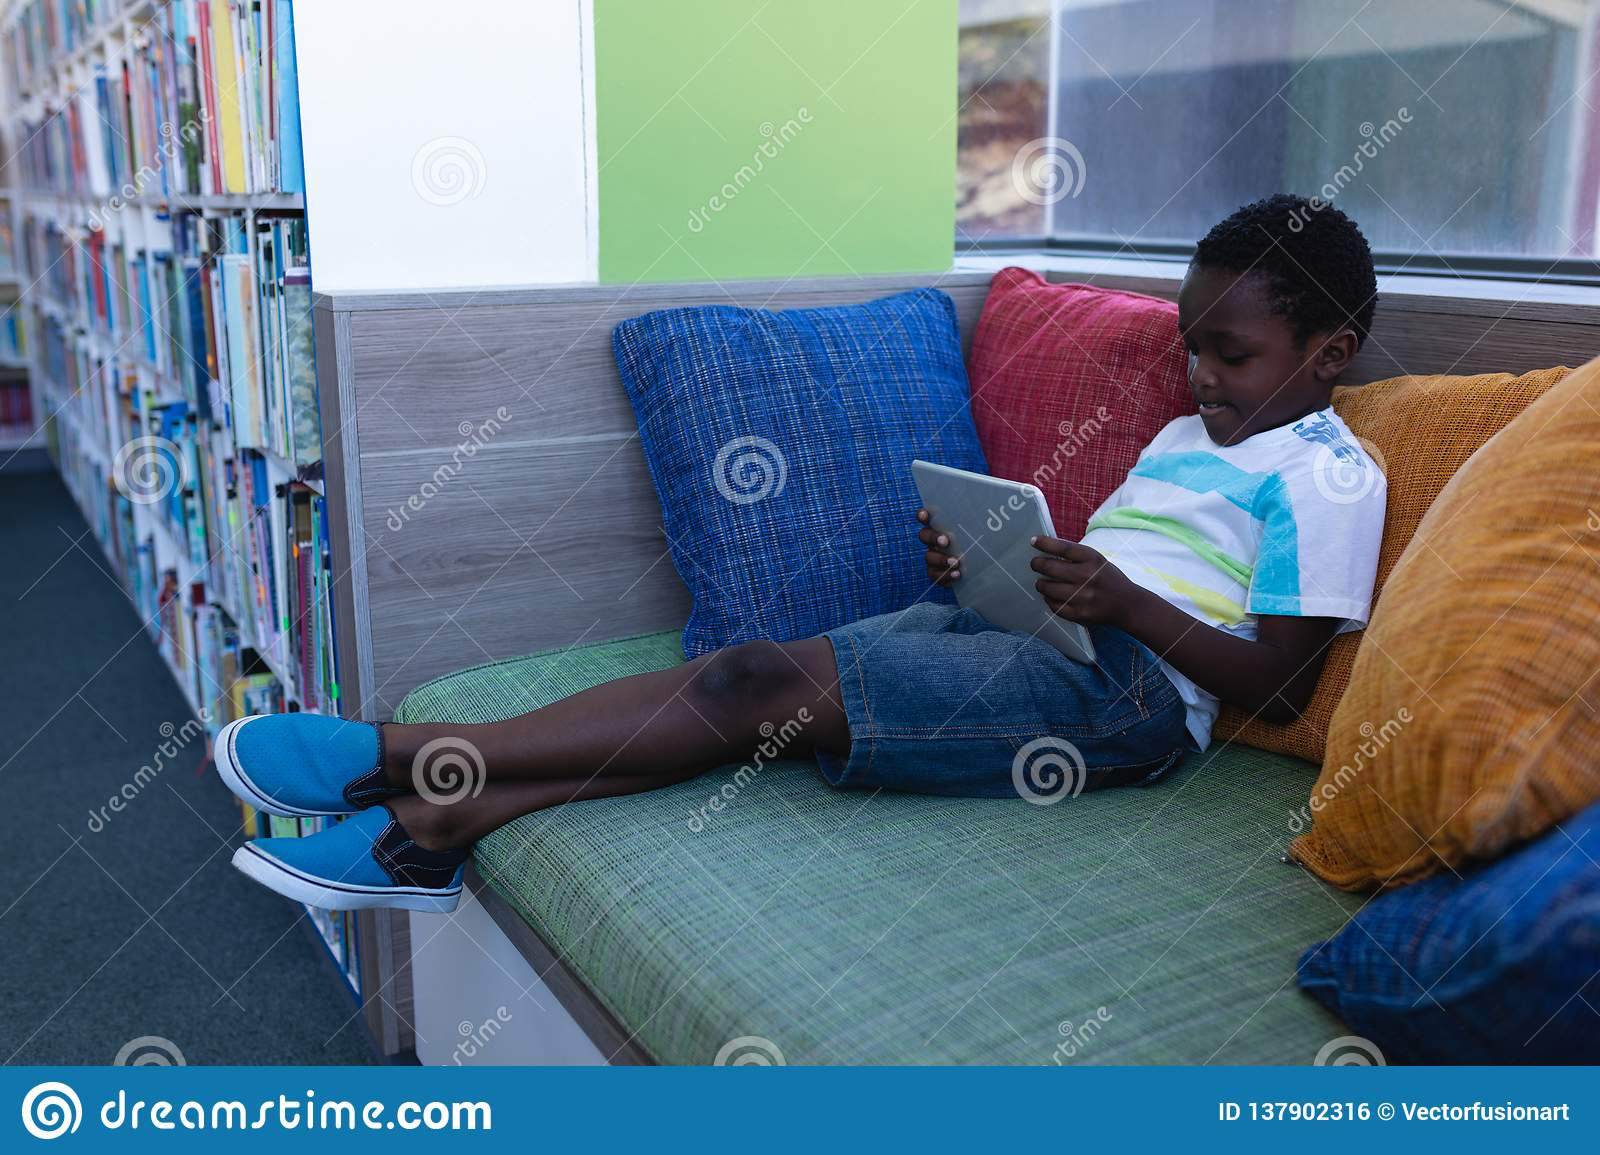 Schoolboy playing on digital tablet while sitting on couch in school library